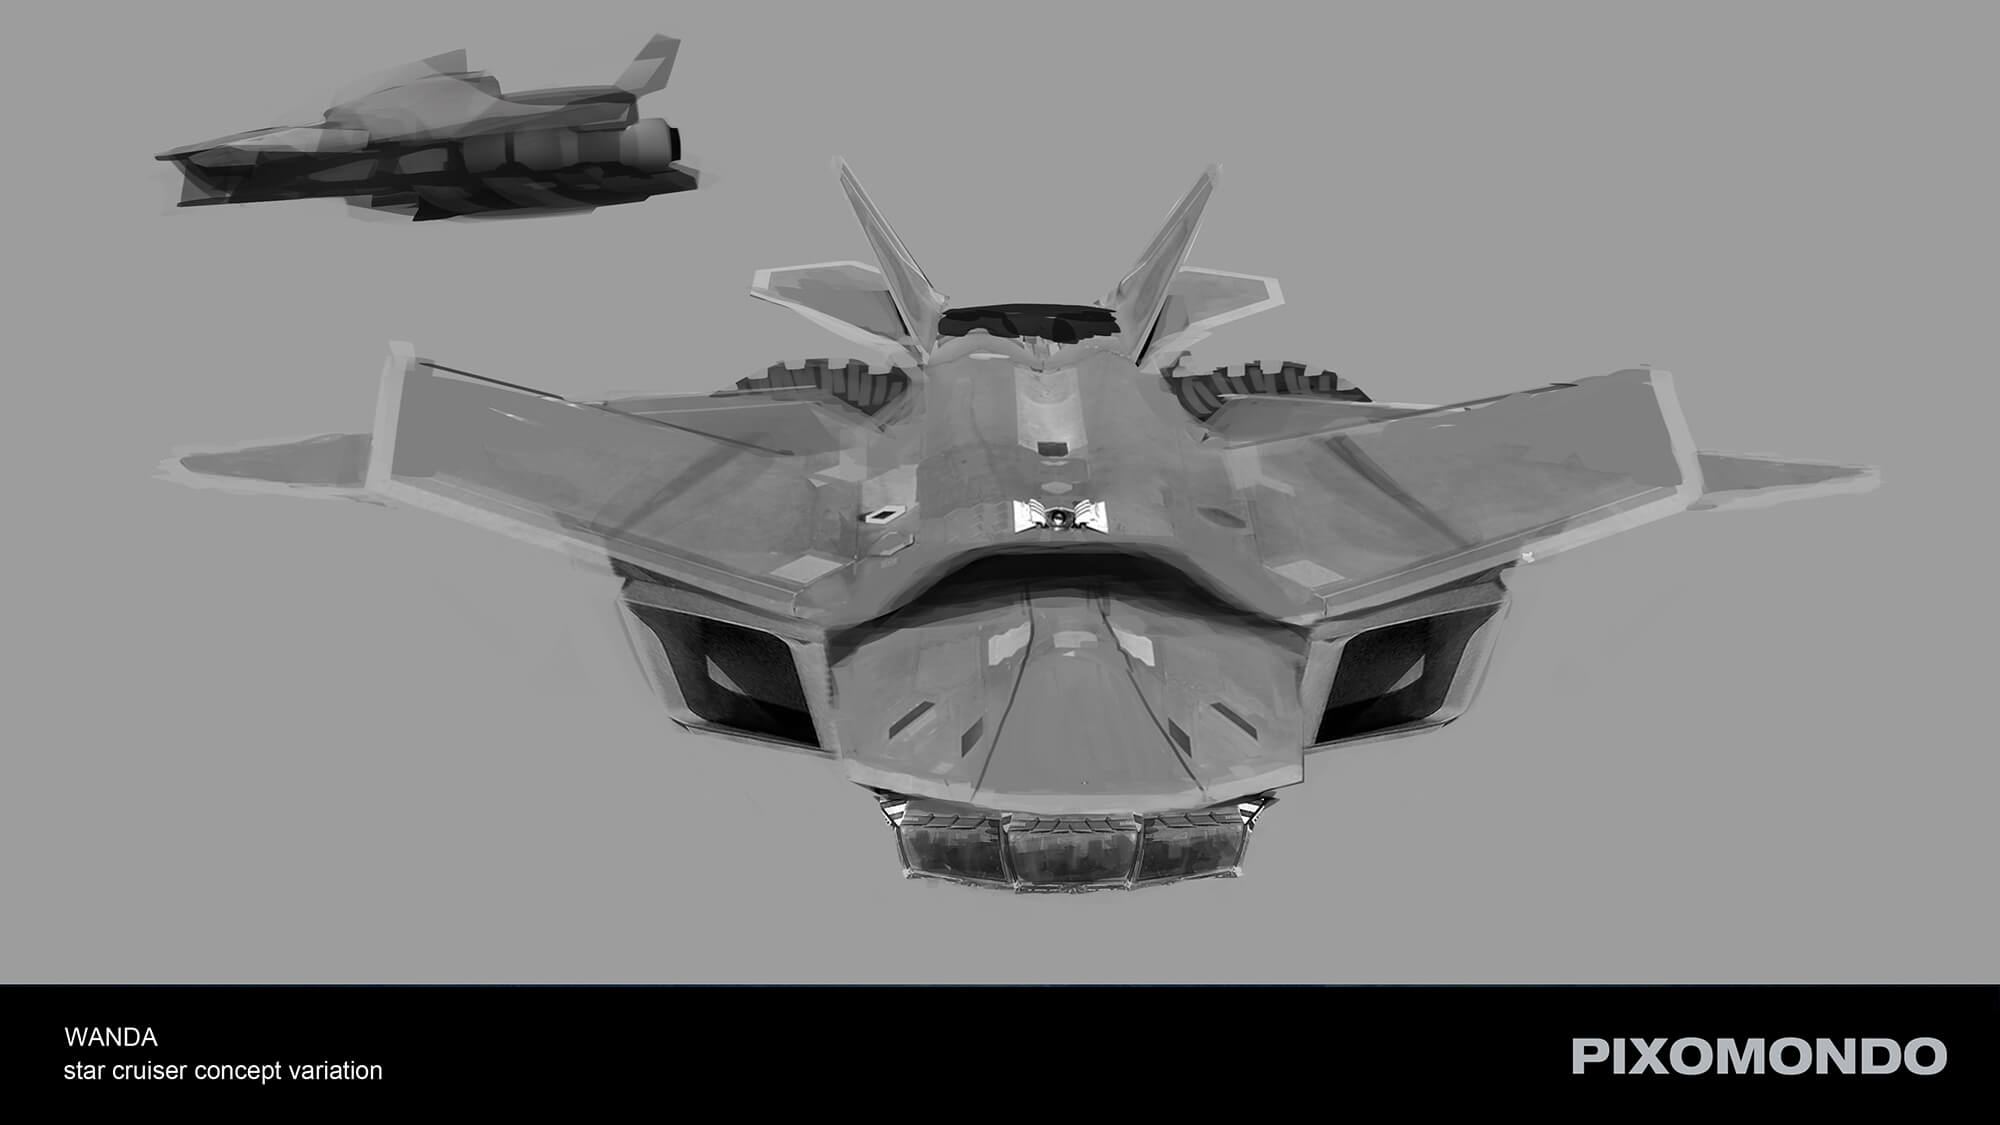 vehicle-concept-wanda-pixomondo-felix-botho-haas-cruiserA-v004c